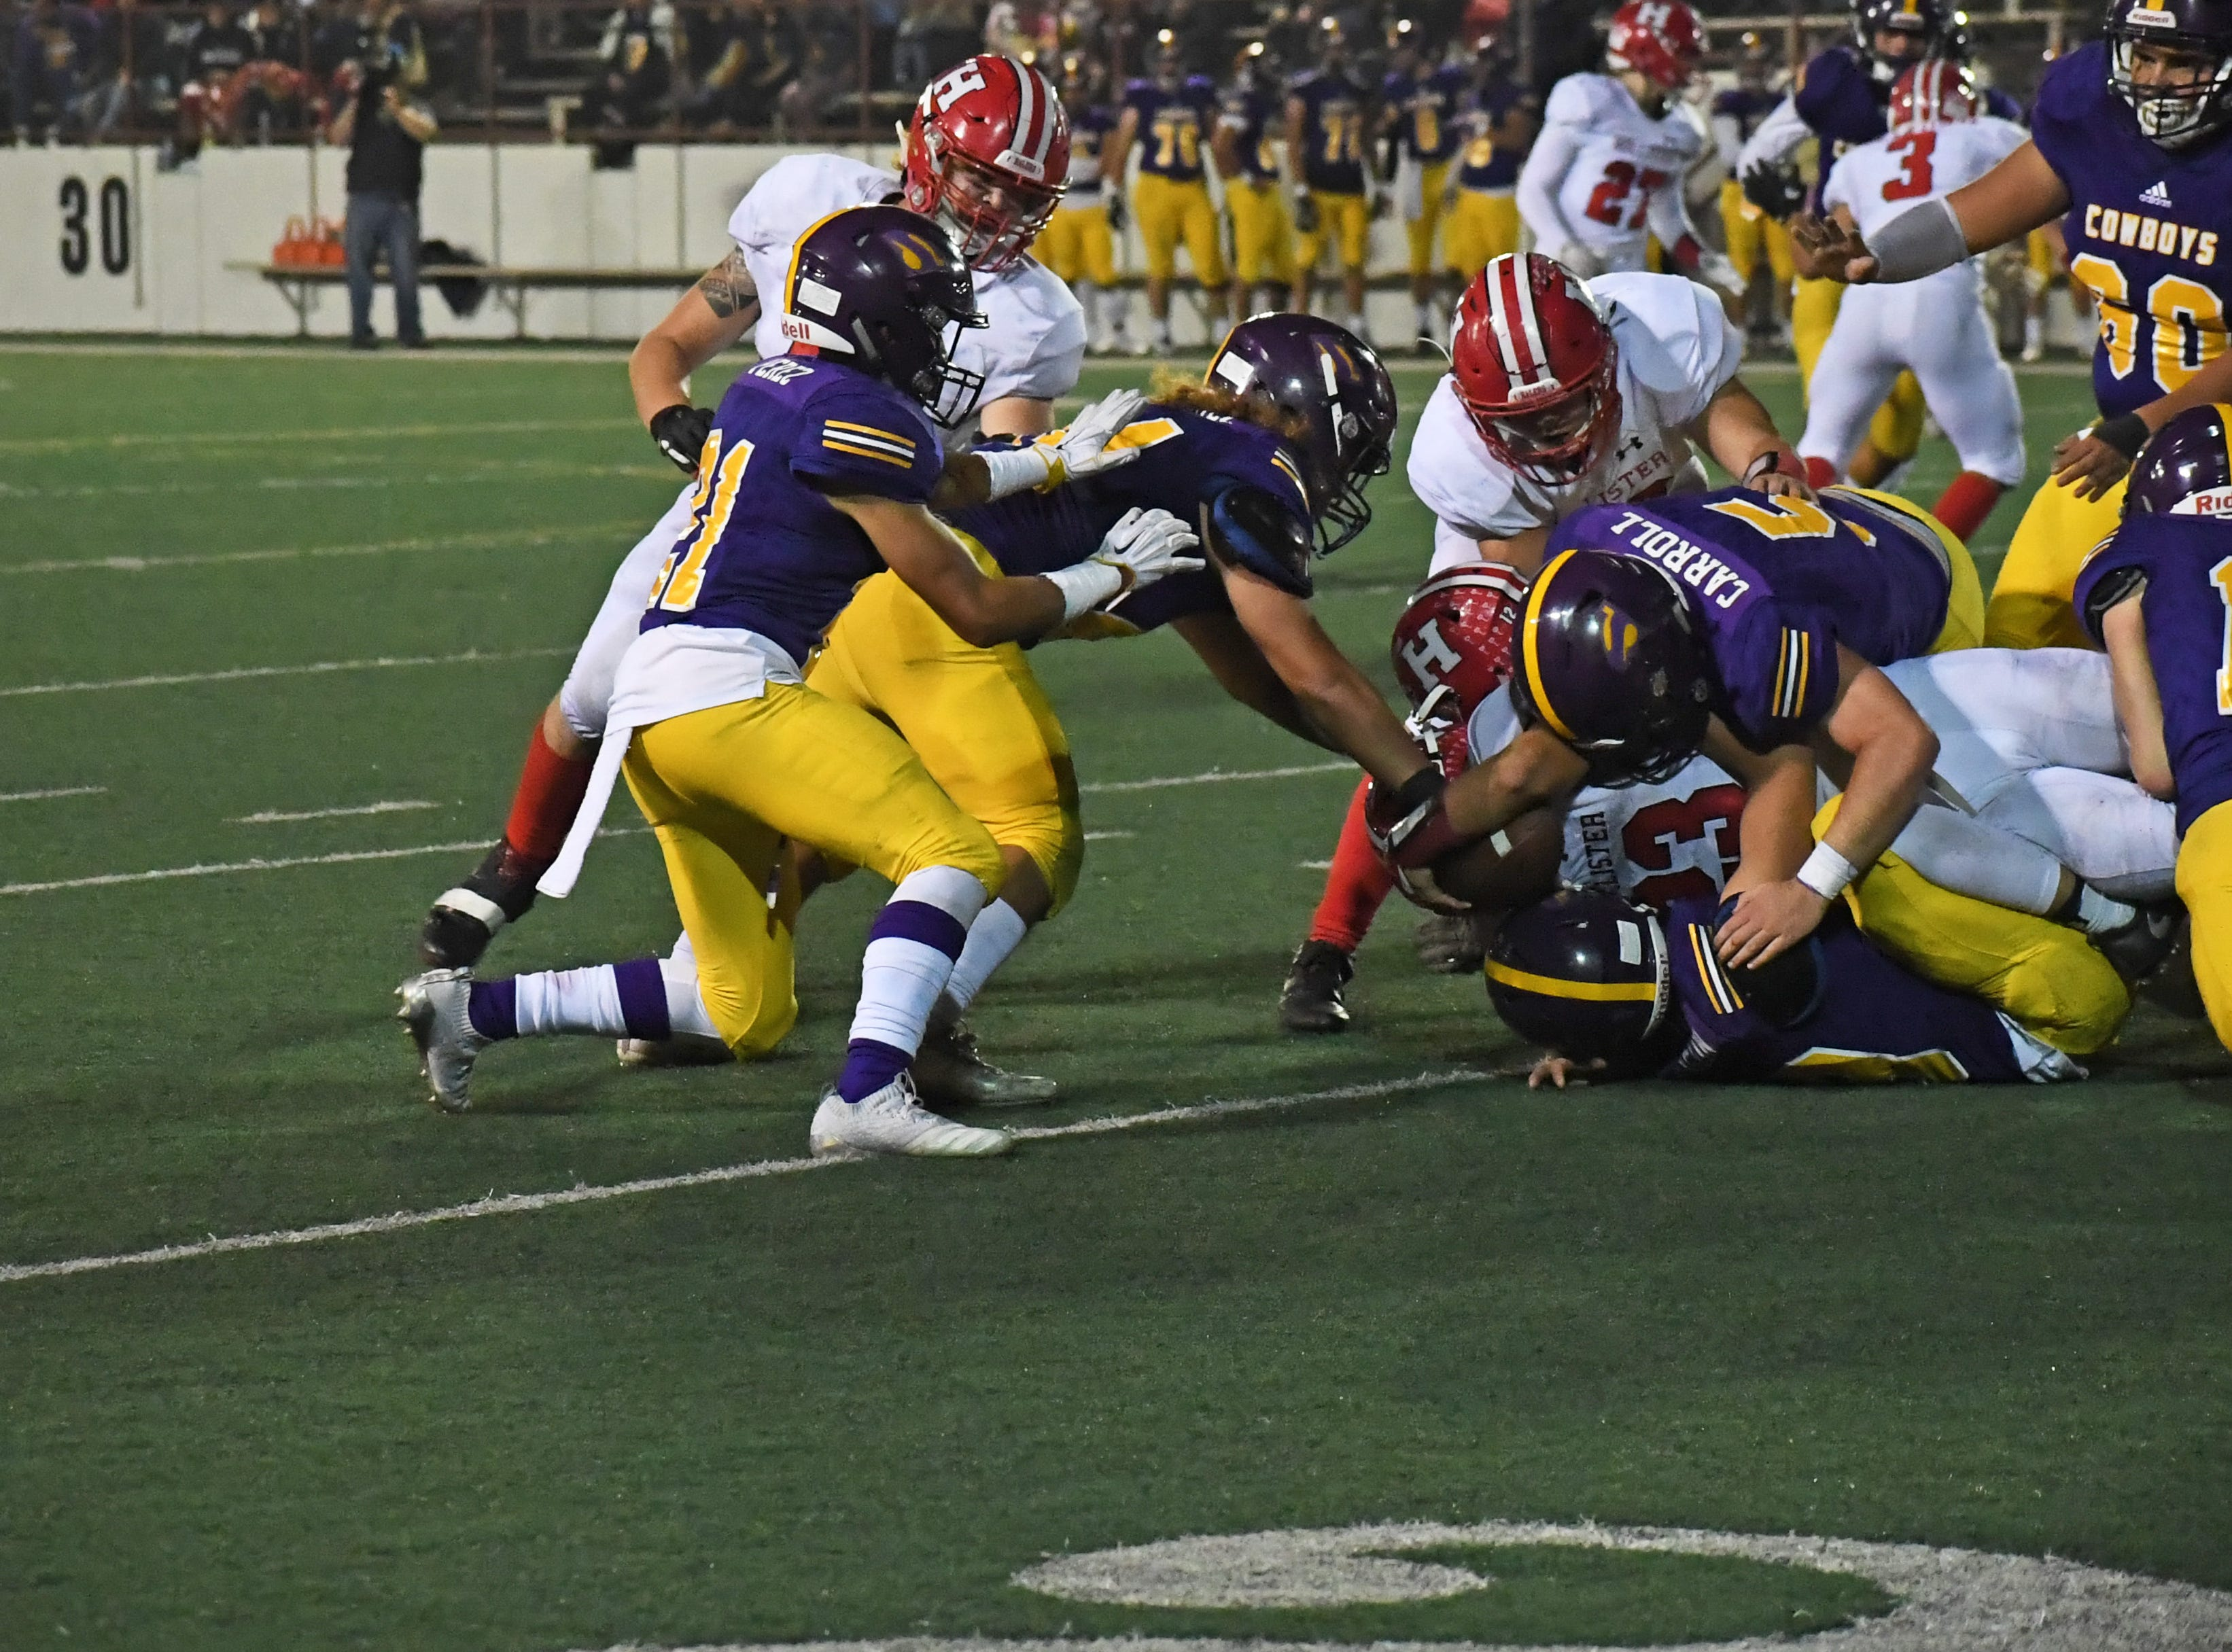 Linebacker Tyler Carroll (5) and safety Cade Smith (19) take down a San Benito running back.